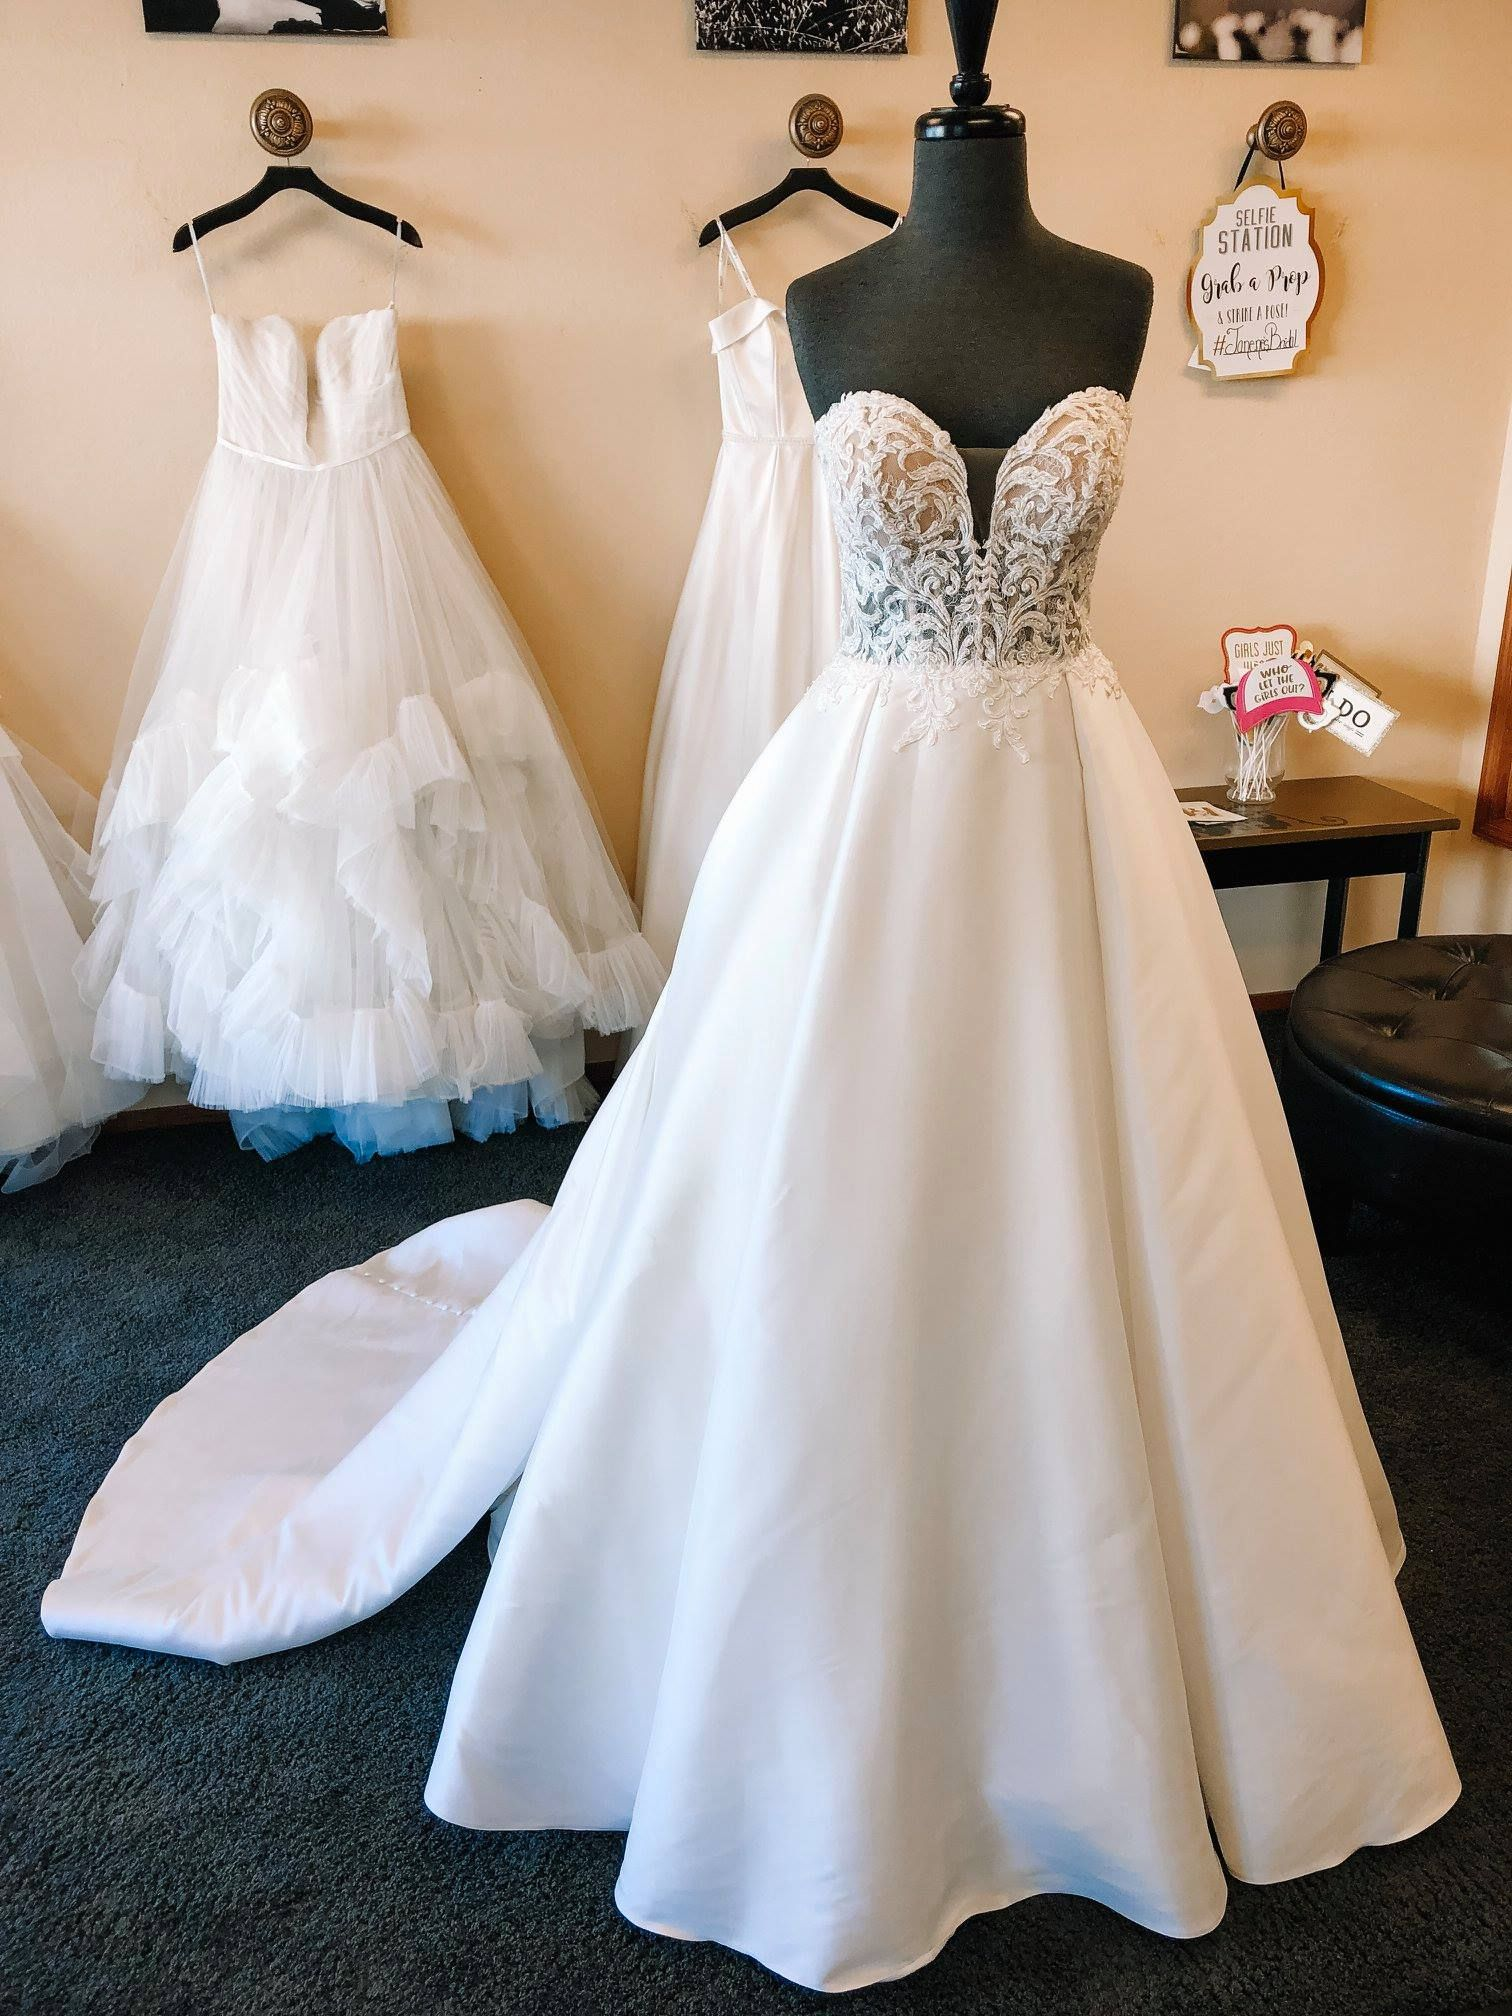 This Weeks Featured Dress Is D2486 From Essense Of Australia Bring Your Fairytale To Life In This Modern Ballgow Bridal Boutique Wedding Dress Shopping Bridal